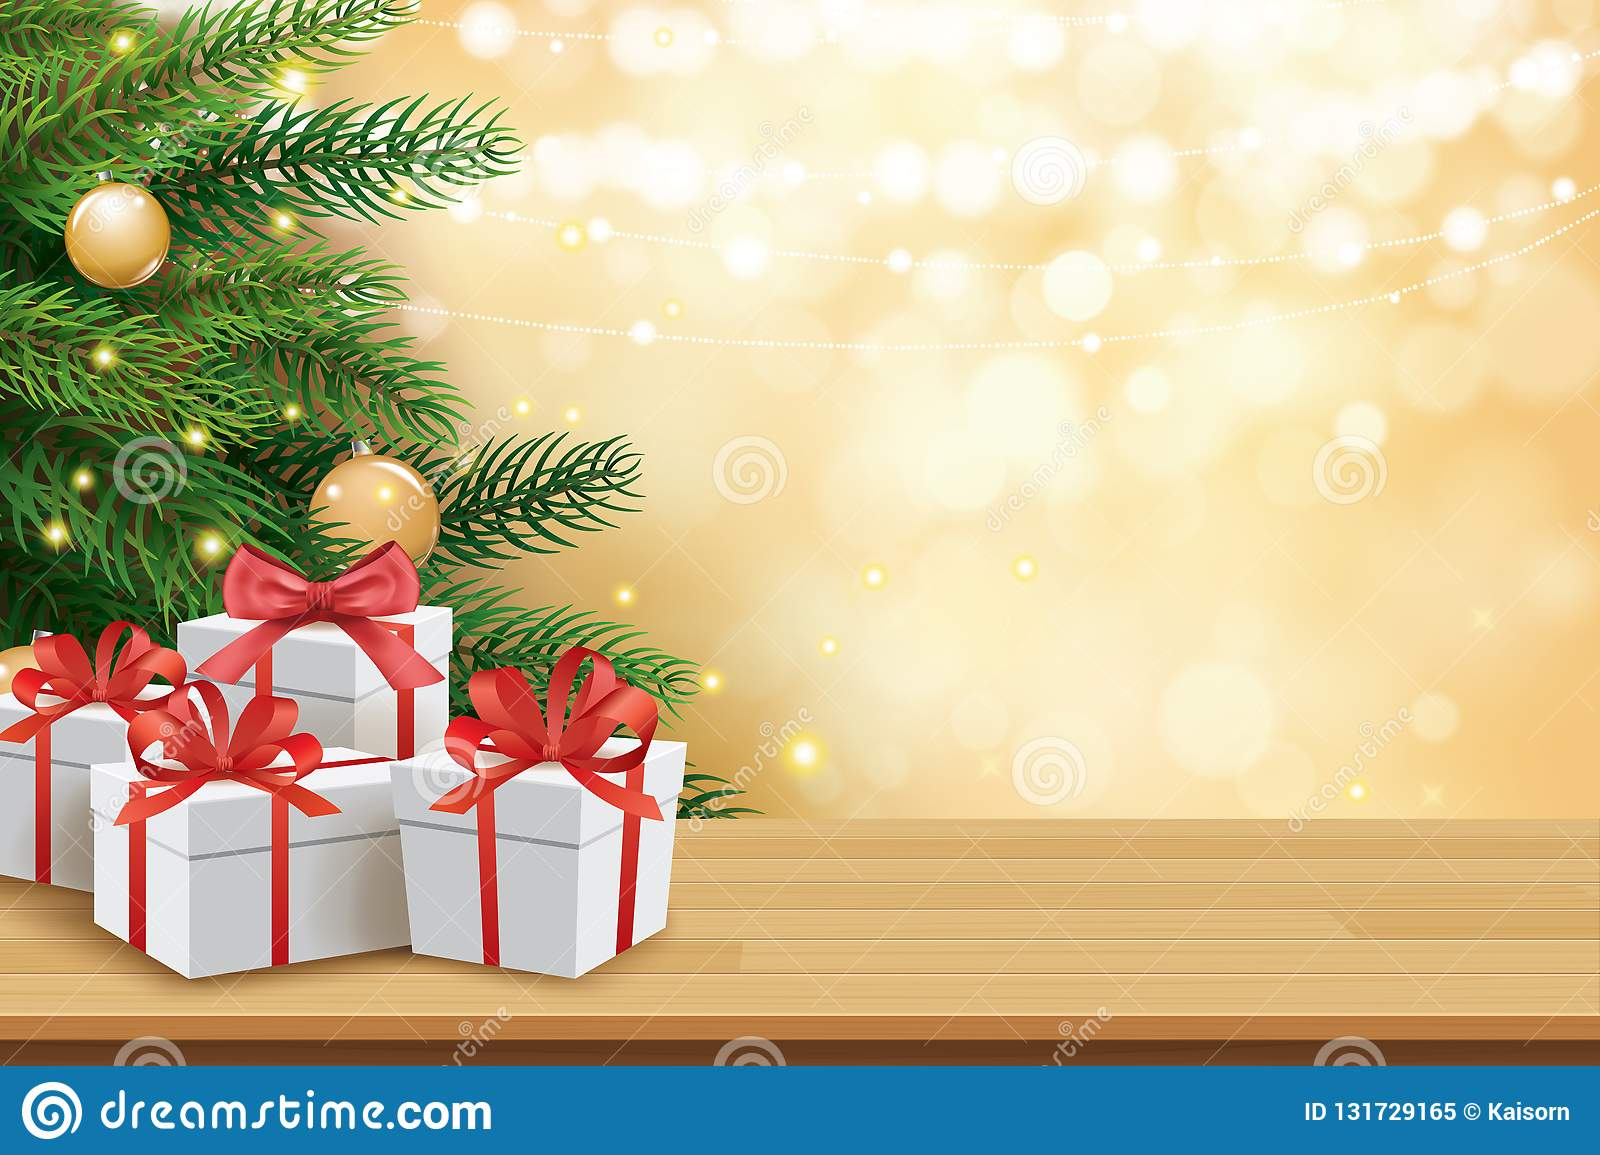 Christmas greeting card with gifts boxes on wooden table and tree bokeh background. Xmas and happy new year